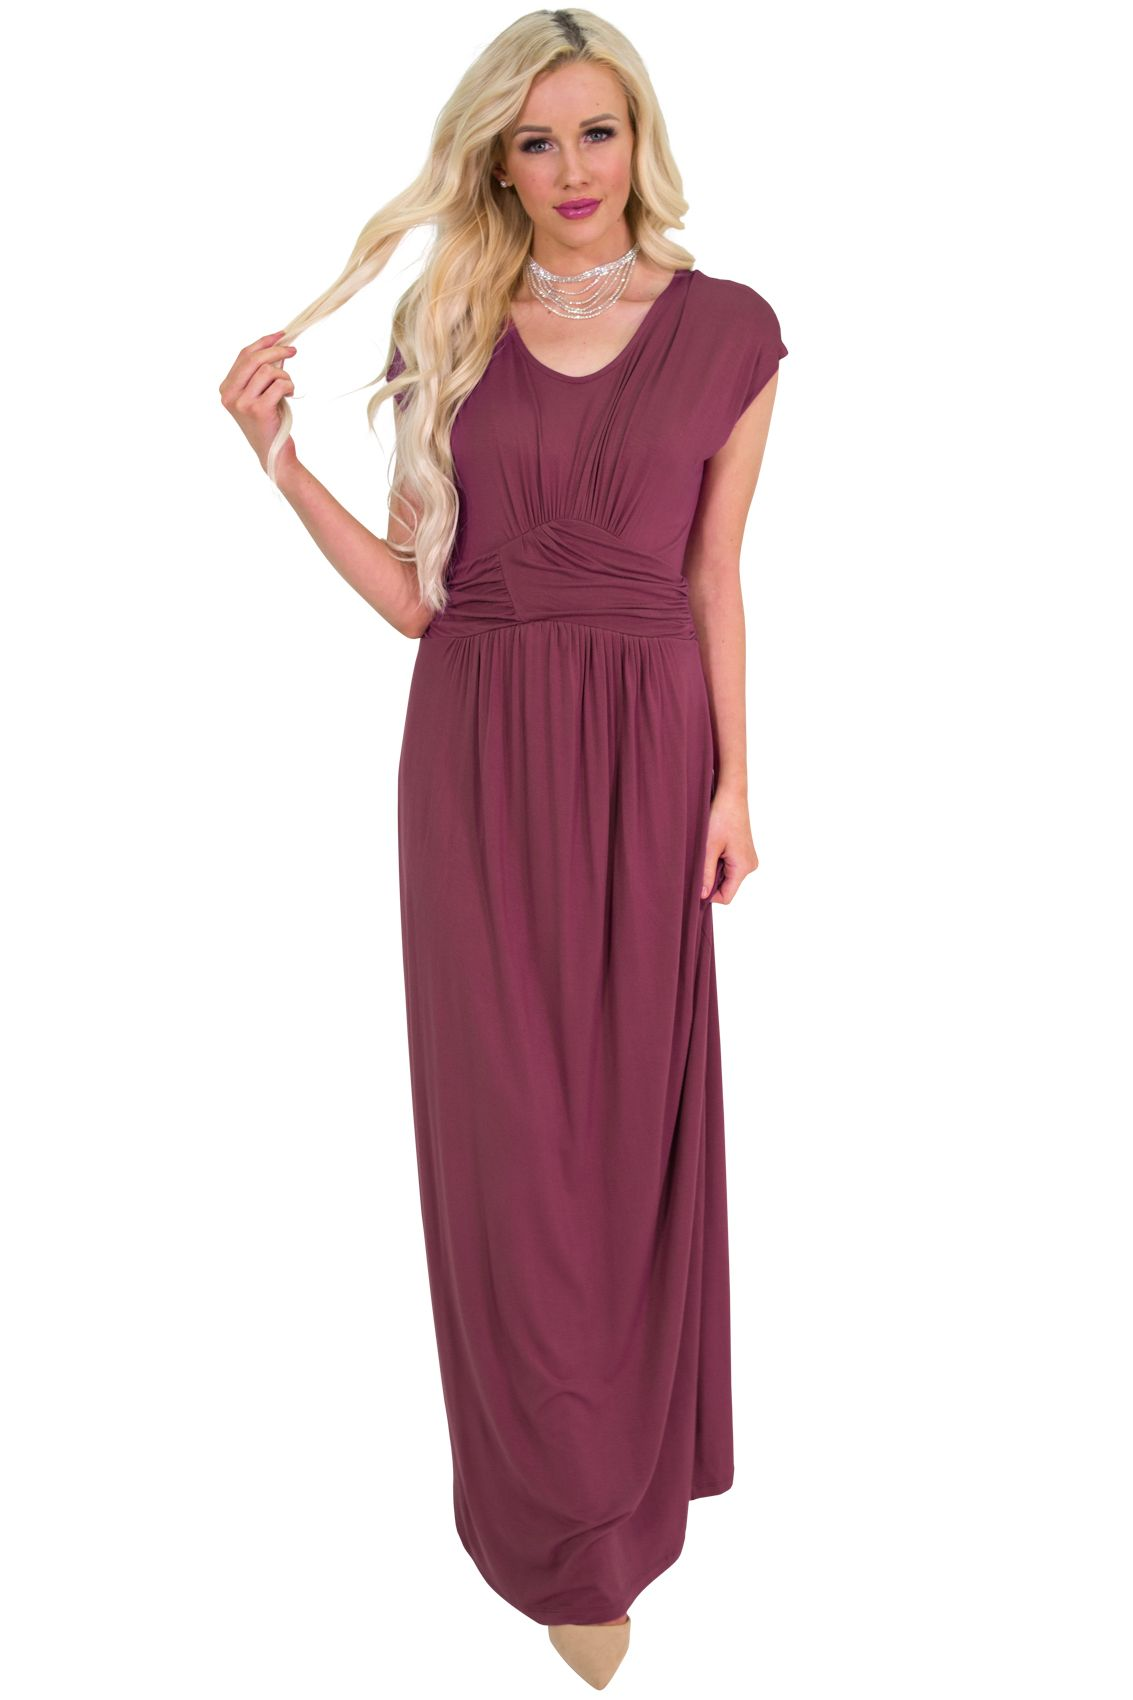 Quot Athena Quot Modest Maxi Dress W Ruched Empire Waist In Maroon